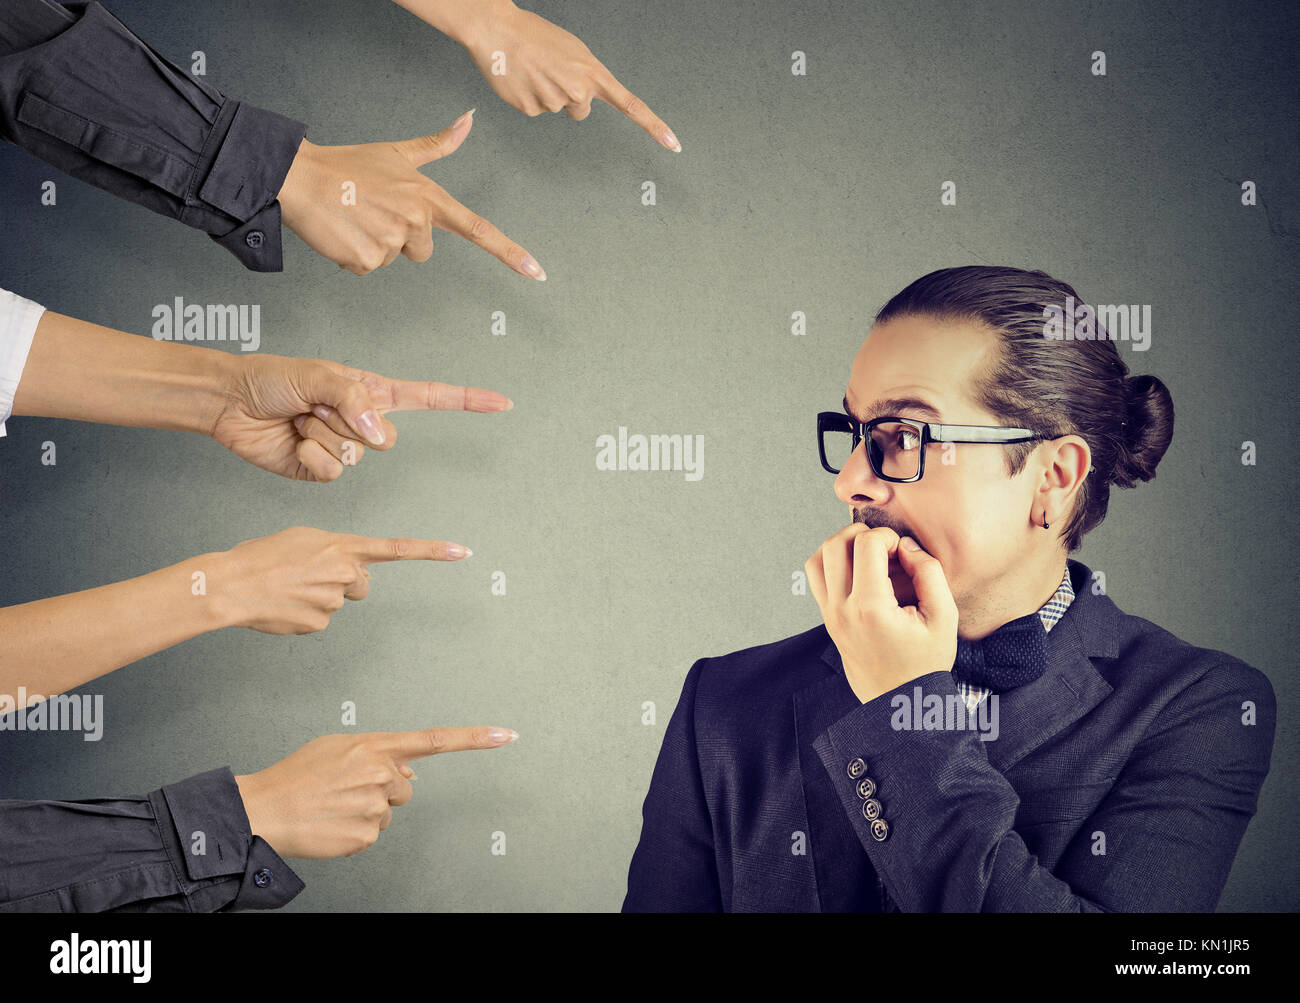 Anxious man scared of being judged by different people. Concept of accusation of guilty guy. Negative emotions face - Stock Image